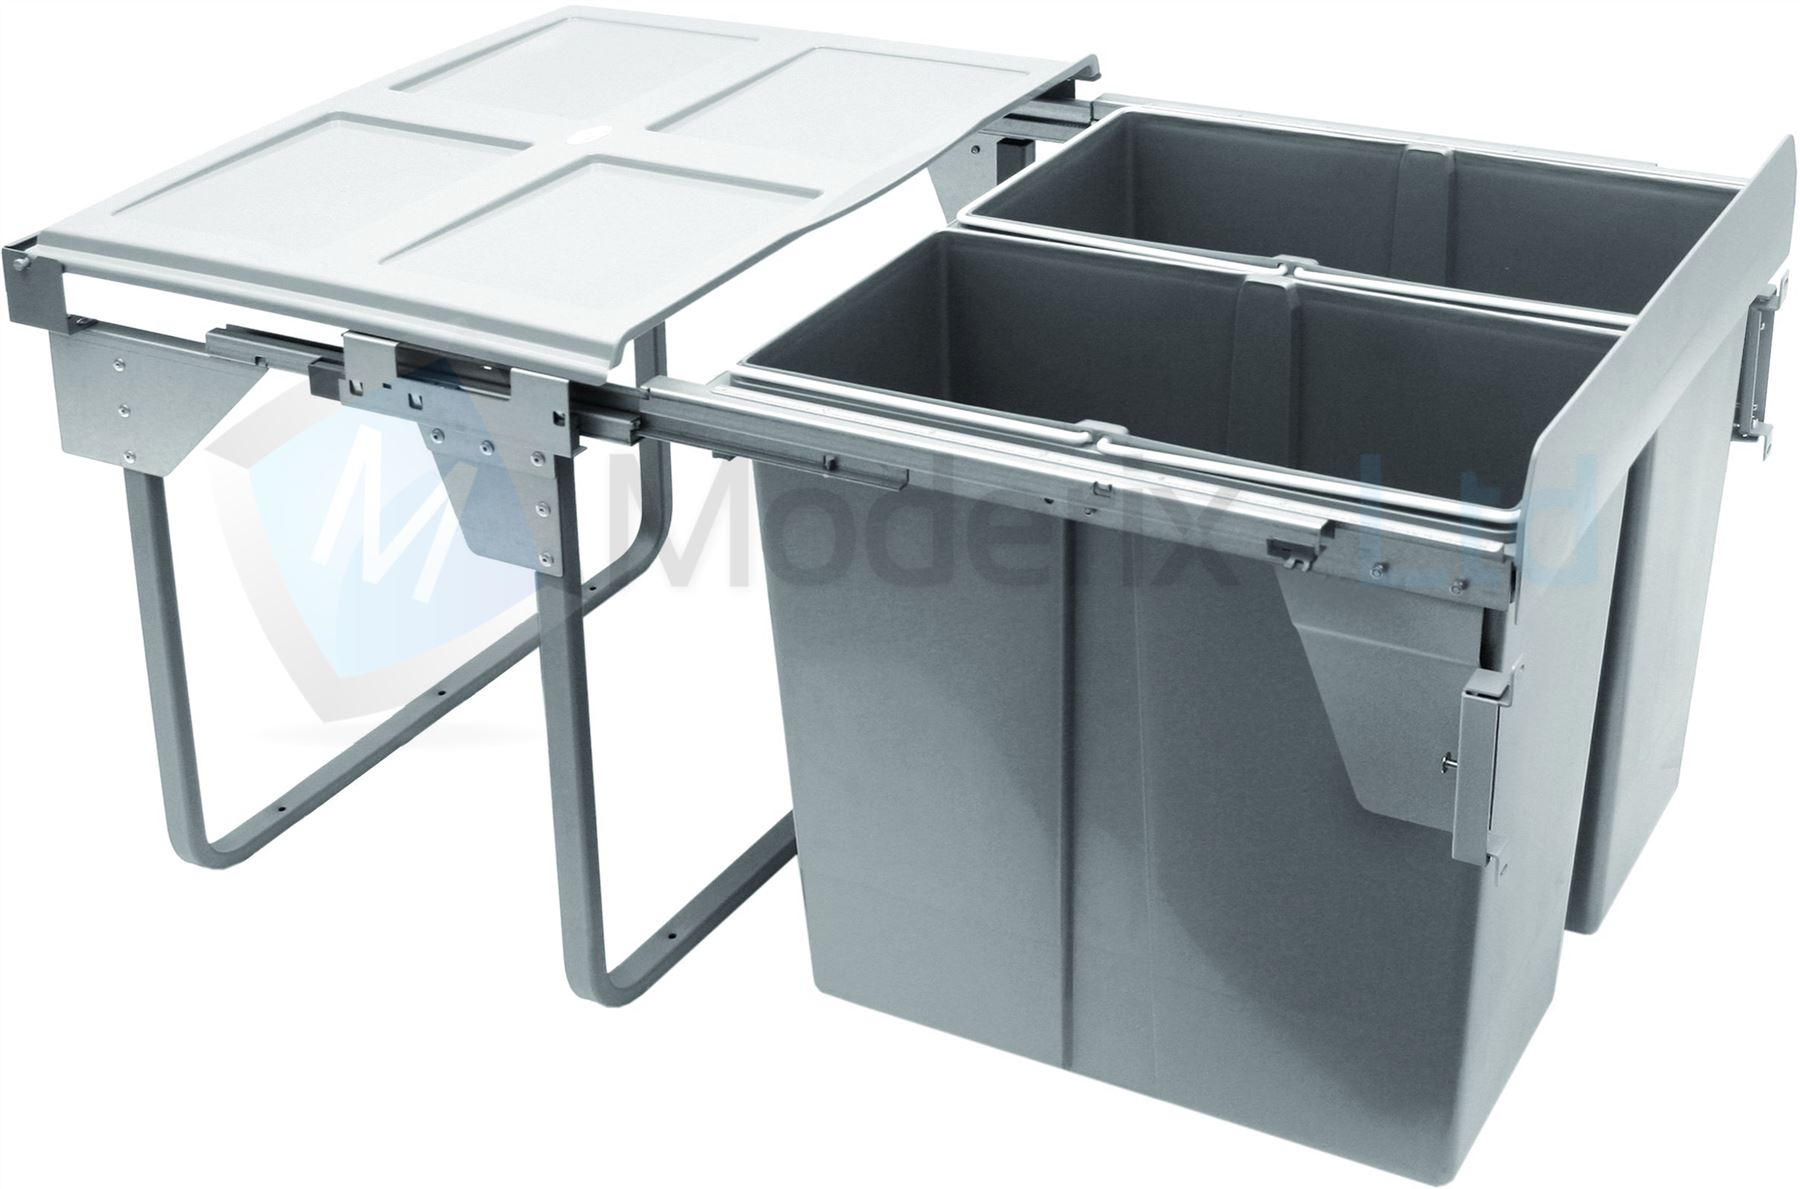 Door Mounted Pull Out Bin Kitchen Pull Out Plastic Recycling Bin Waste Bin Full